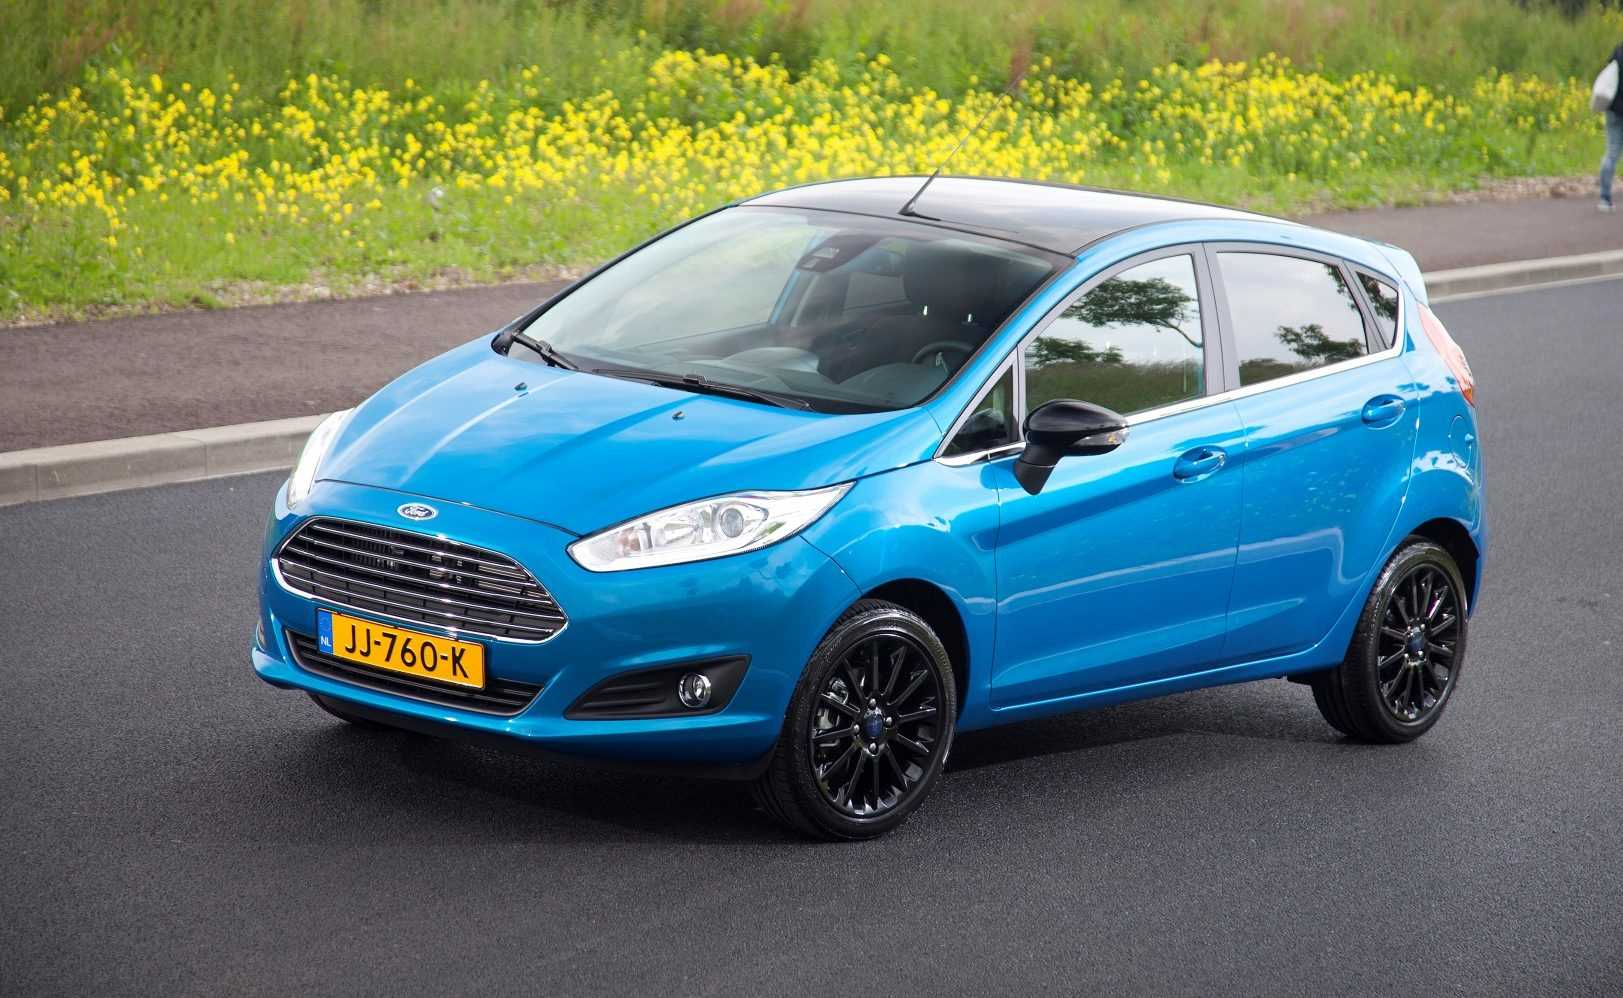 Ford Fiesta Silver Edition & Candy Blue Edition 2016